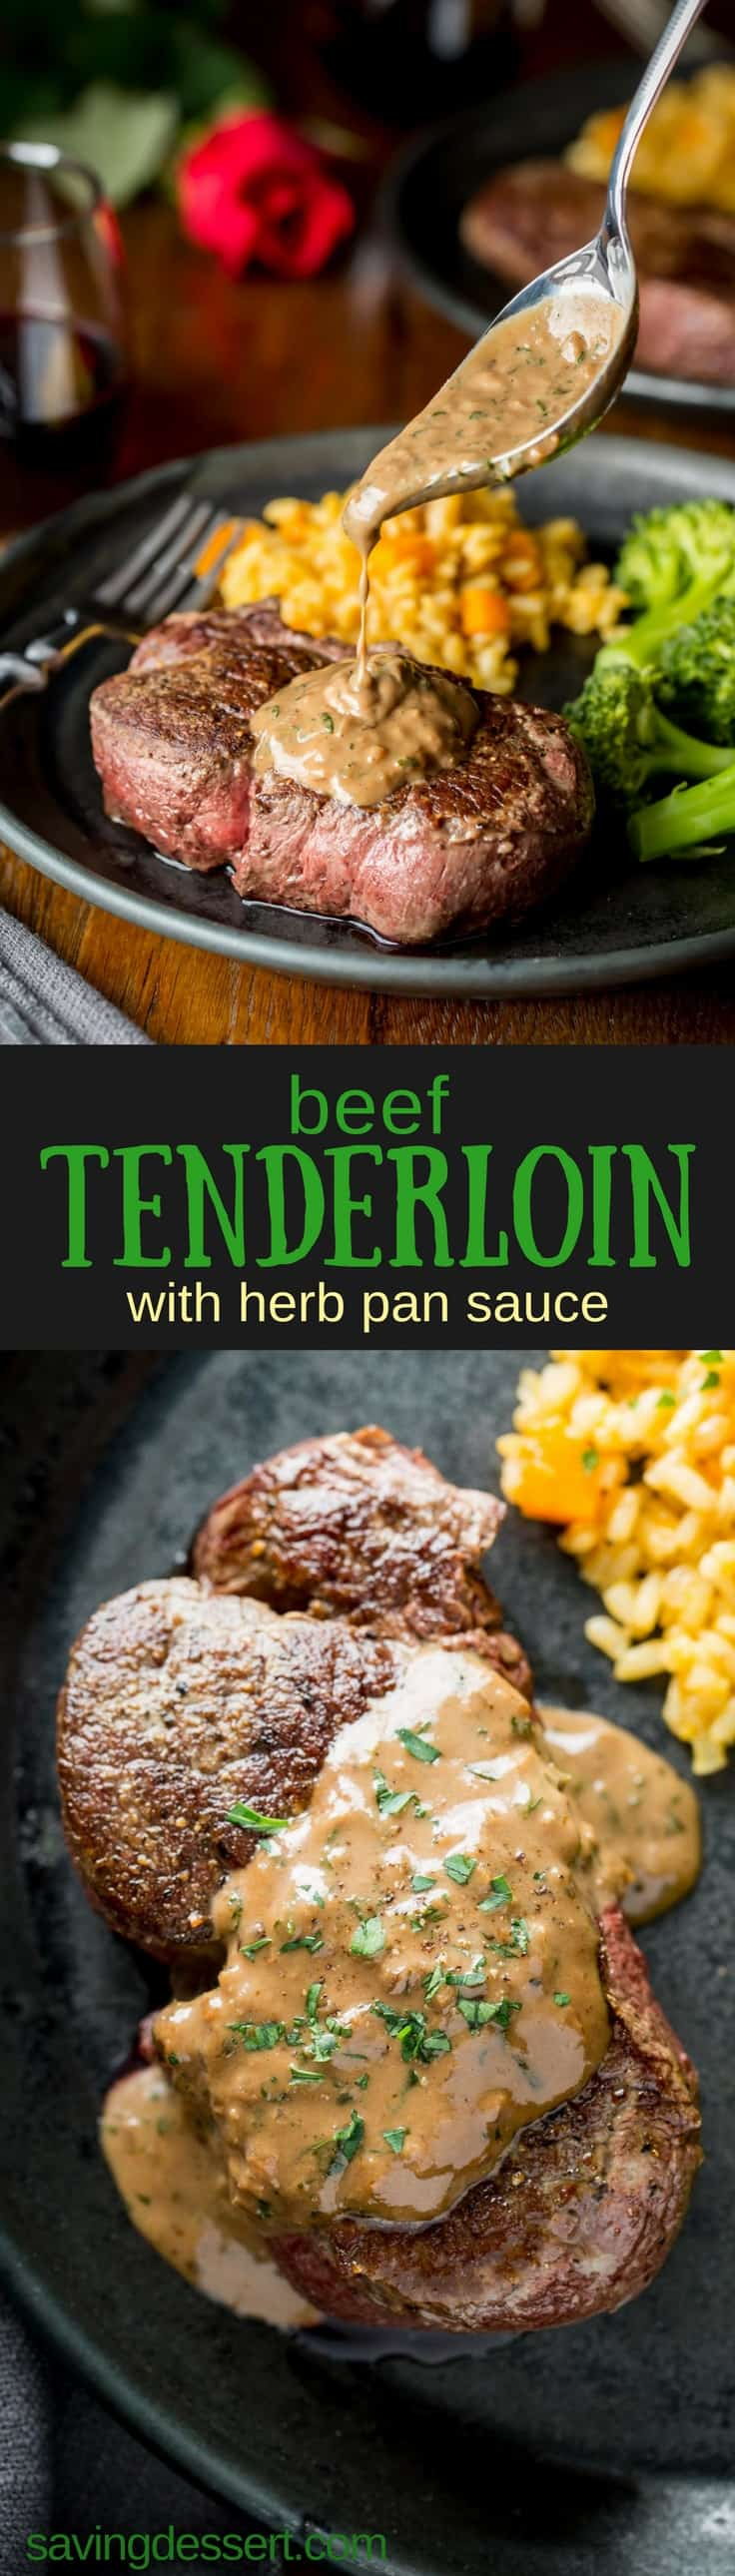 Tender and juicy Beef Tenderloin Steaks with Herb Pan Sauce - a restaurant quality steak for a fraction of the price, and super easy to make too! The pan sauce comes together in minutes and the flavor is nothing short of fantastic. #savingroomfordessert #steak #tenderloin #pansearedsteak #herbpansauce #pansauce #ovenseared #beeftenderloin